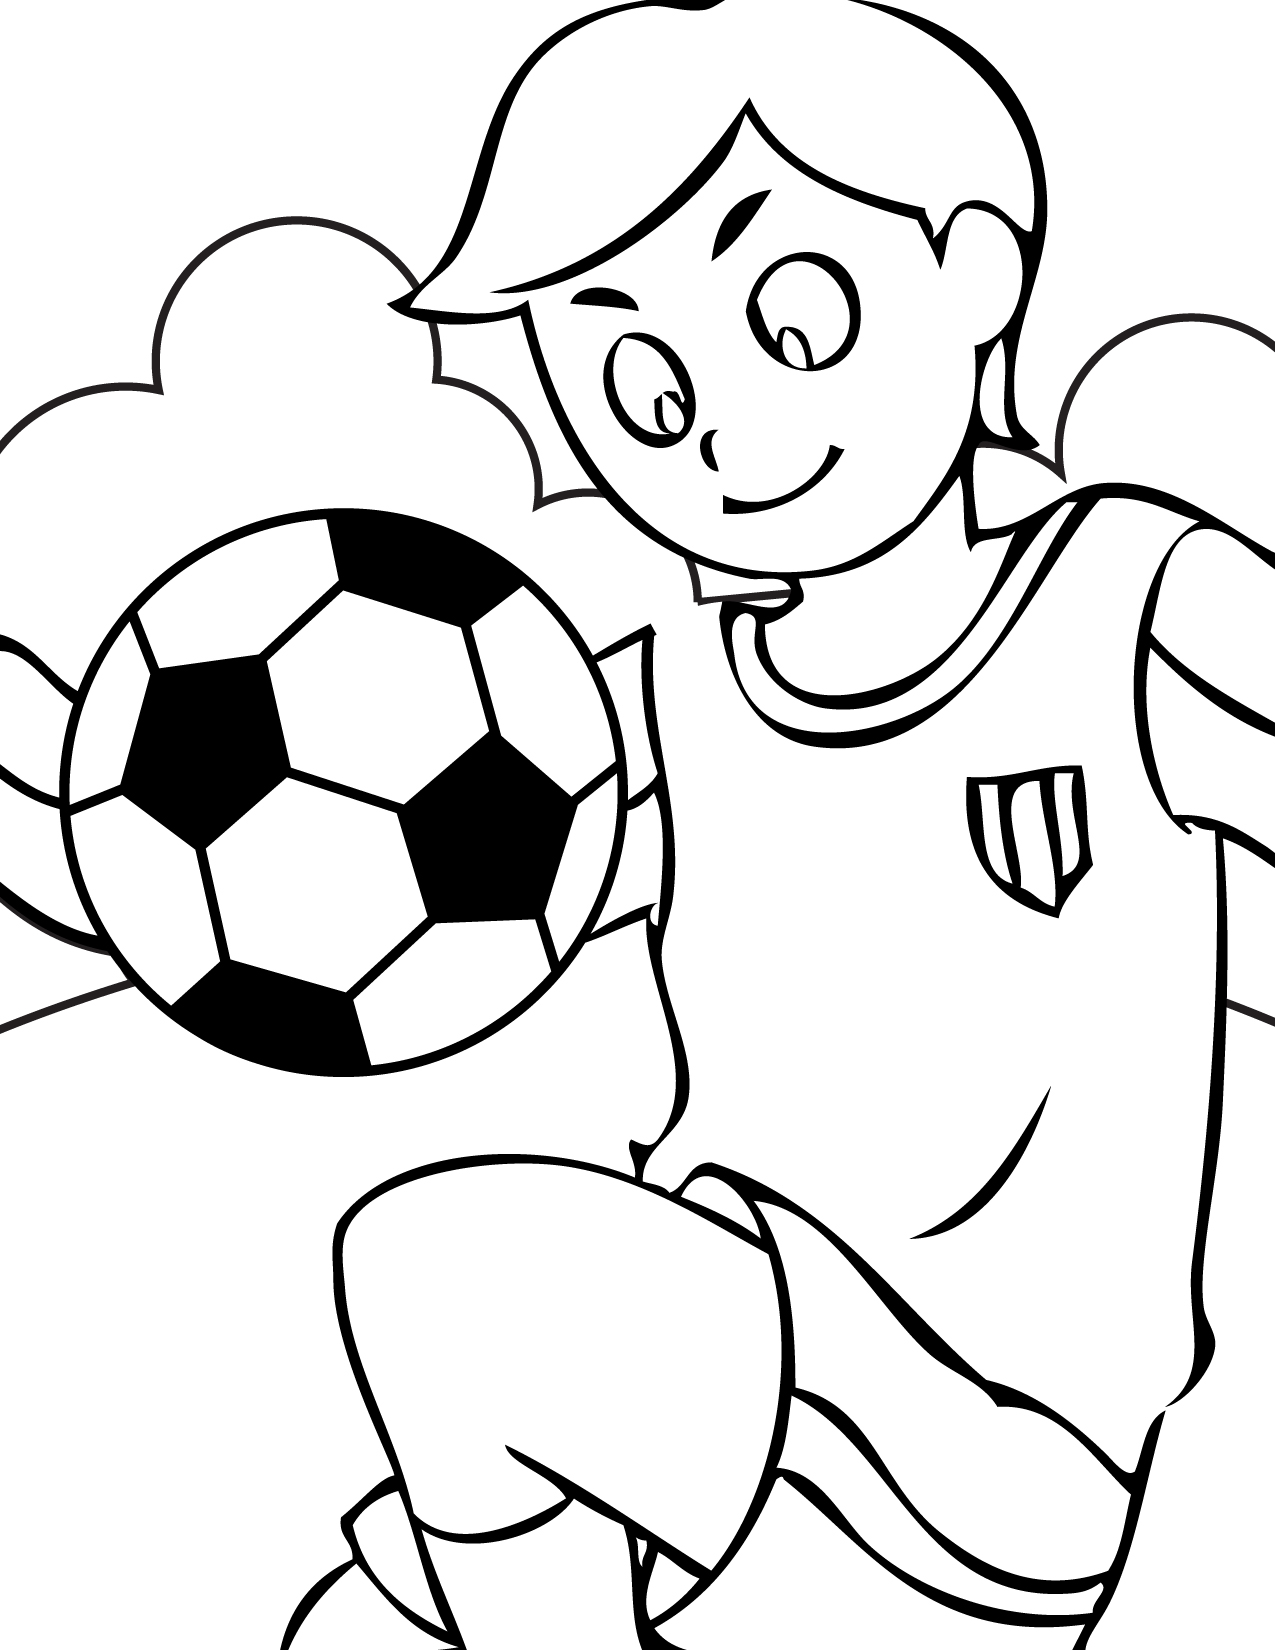 online coloring pages sports - photo#10